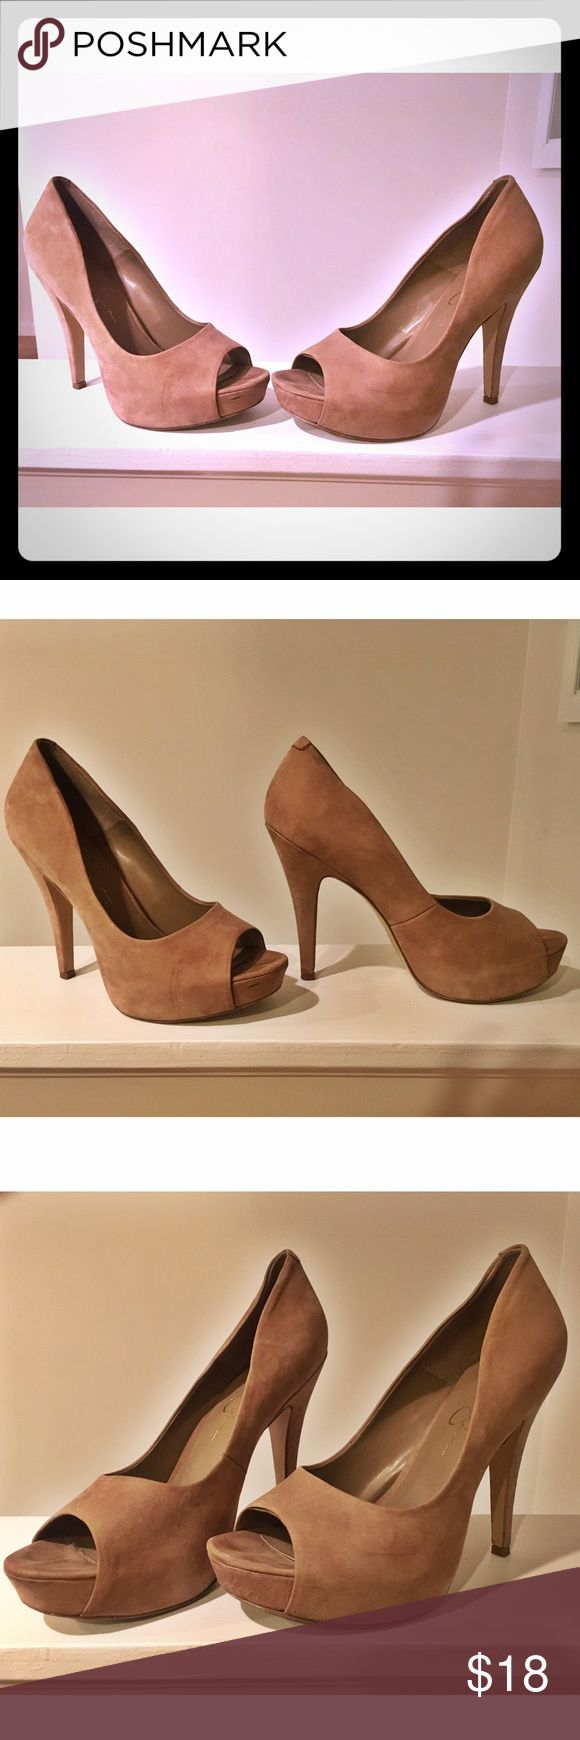 Nude, suede peep-toe heels 🍒 Suede pee toe heels that go with everything with their classy nude color. Peep toe can be great for the summer or early fall! Worn once or twice to an occasion. Make me an offer! 🌟 Jessica Simpson Shoes Heels